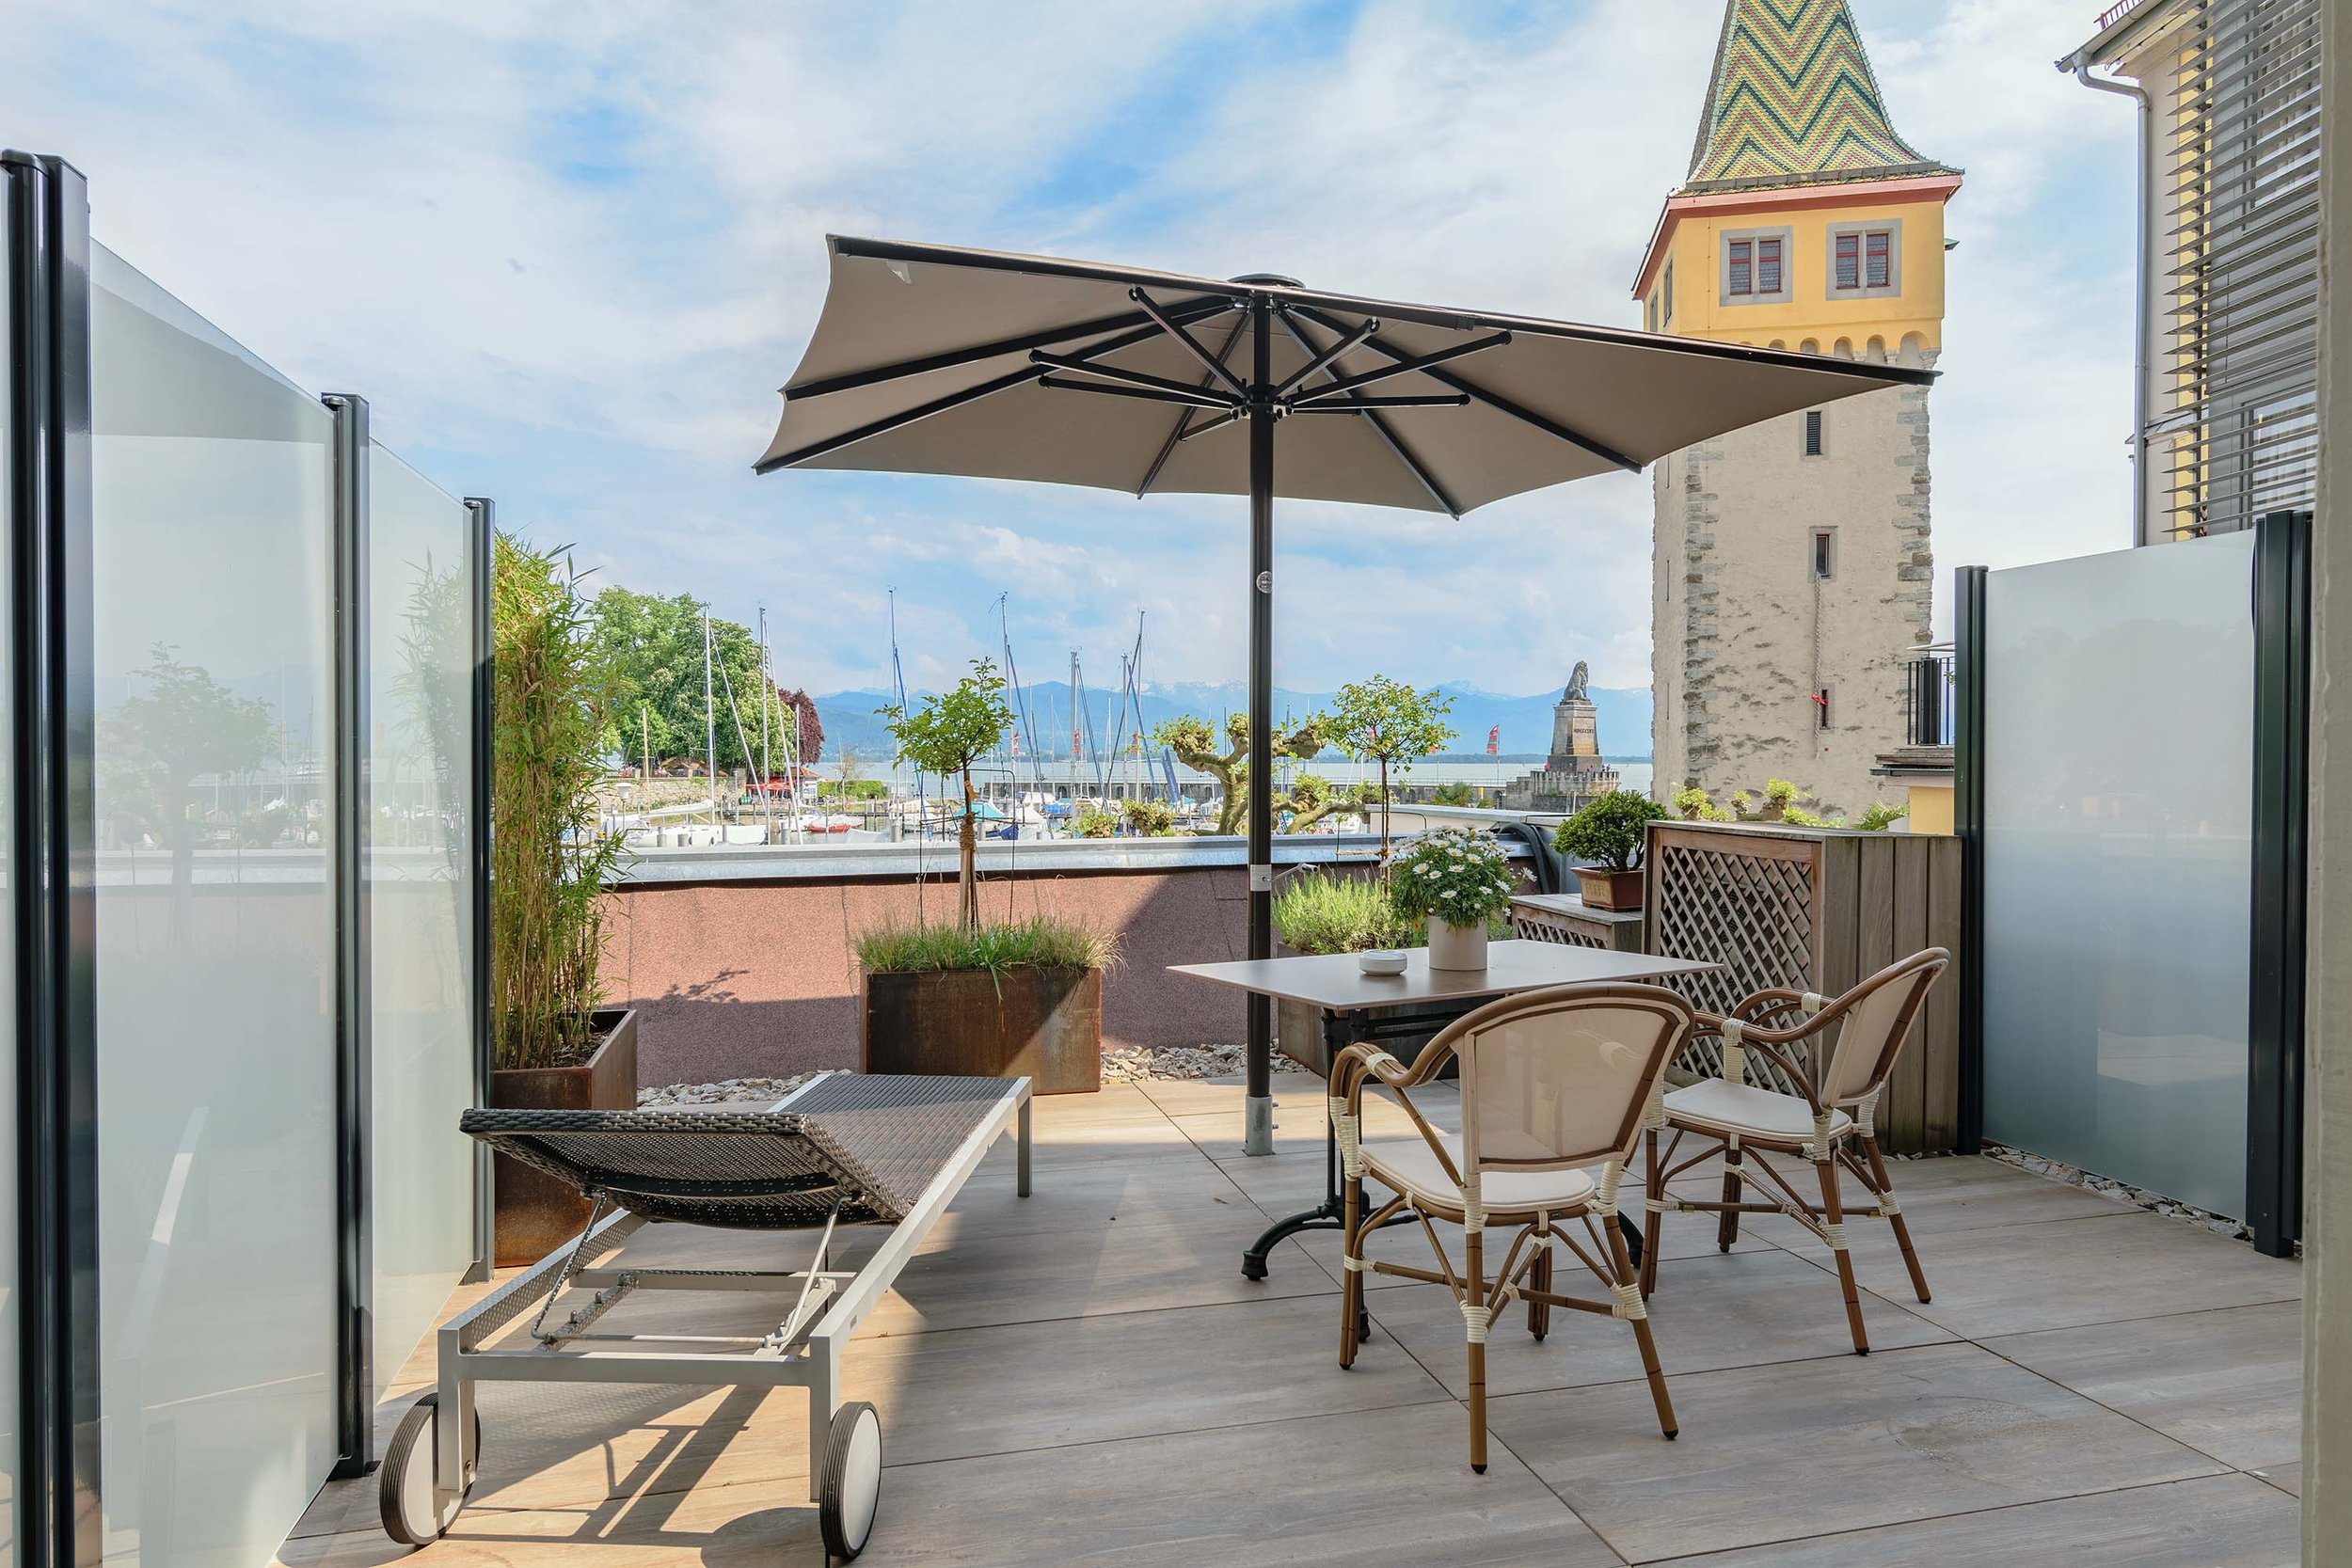 Terrassenzimmer - Lake view room terrace